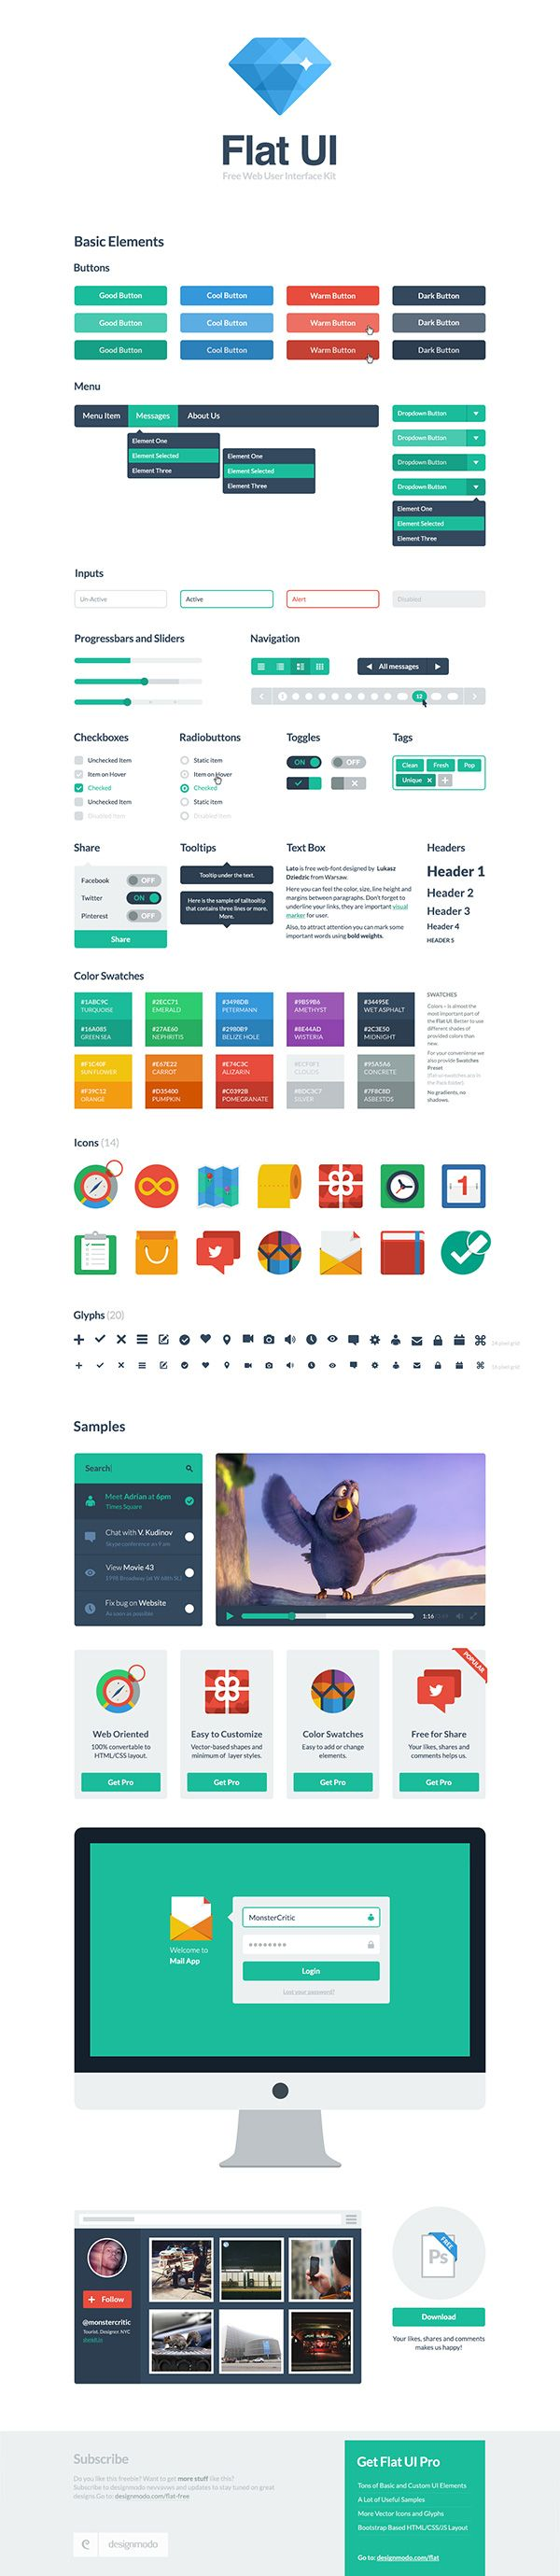 92 best Bootstrap images on Pinterest | Interface design, User ...